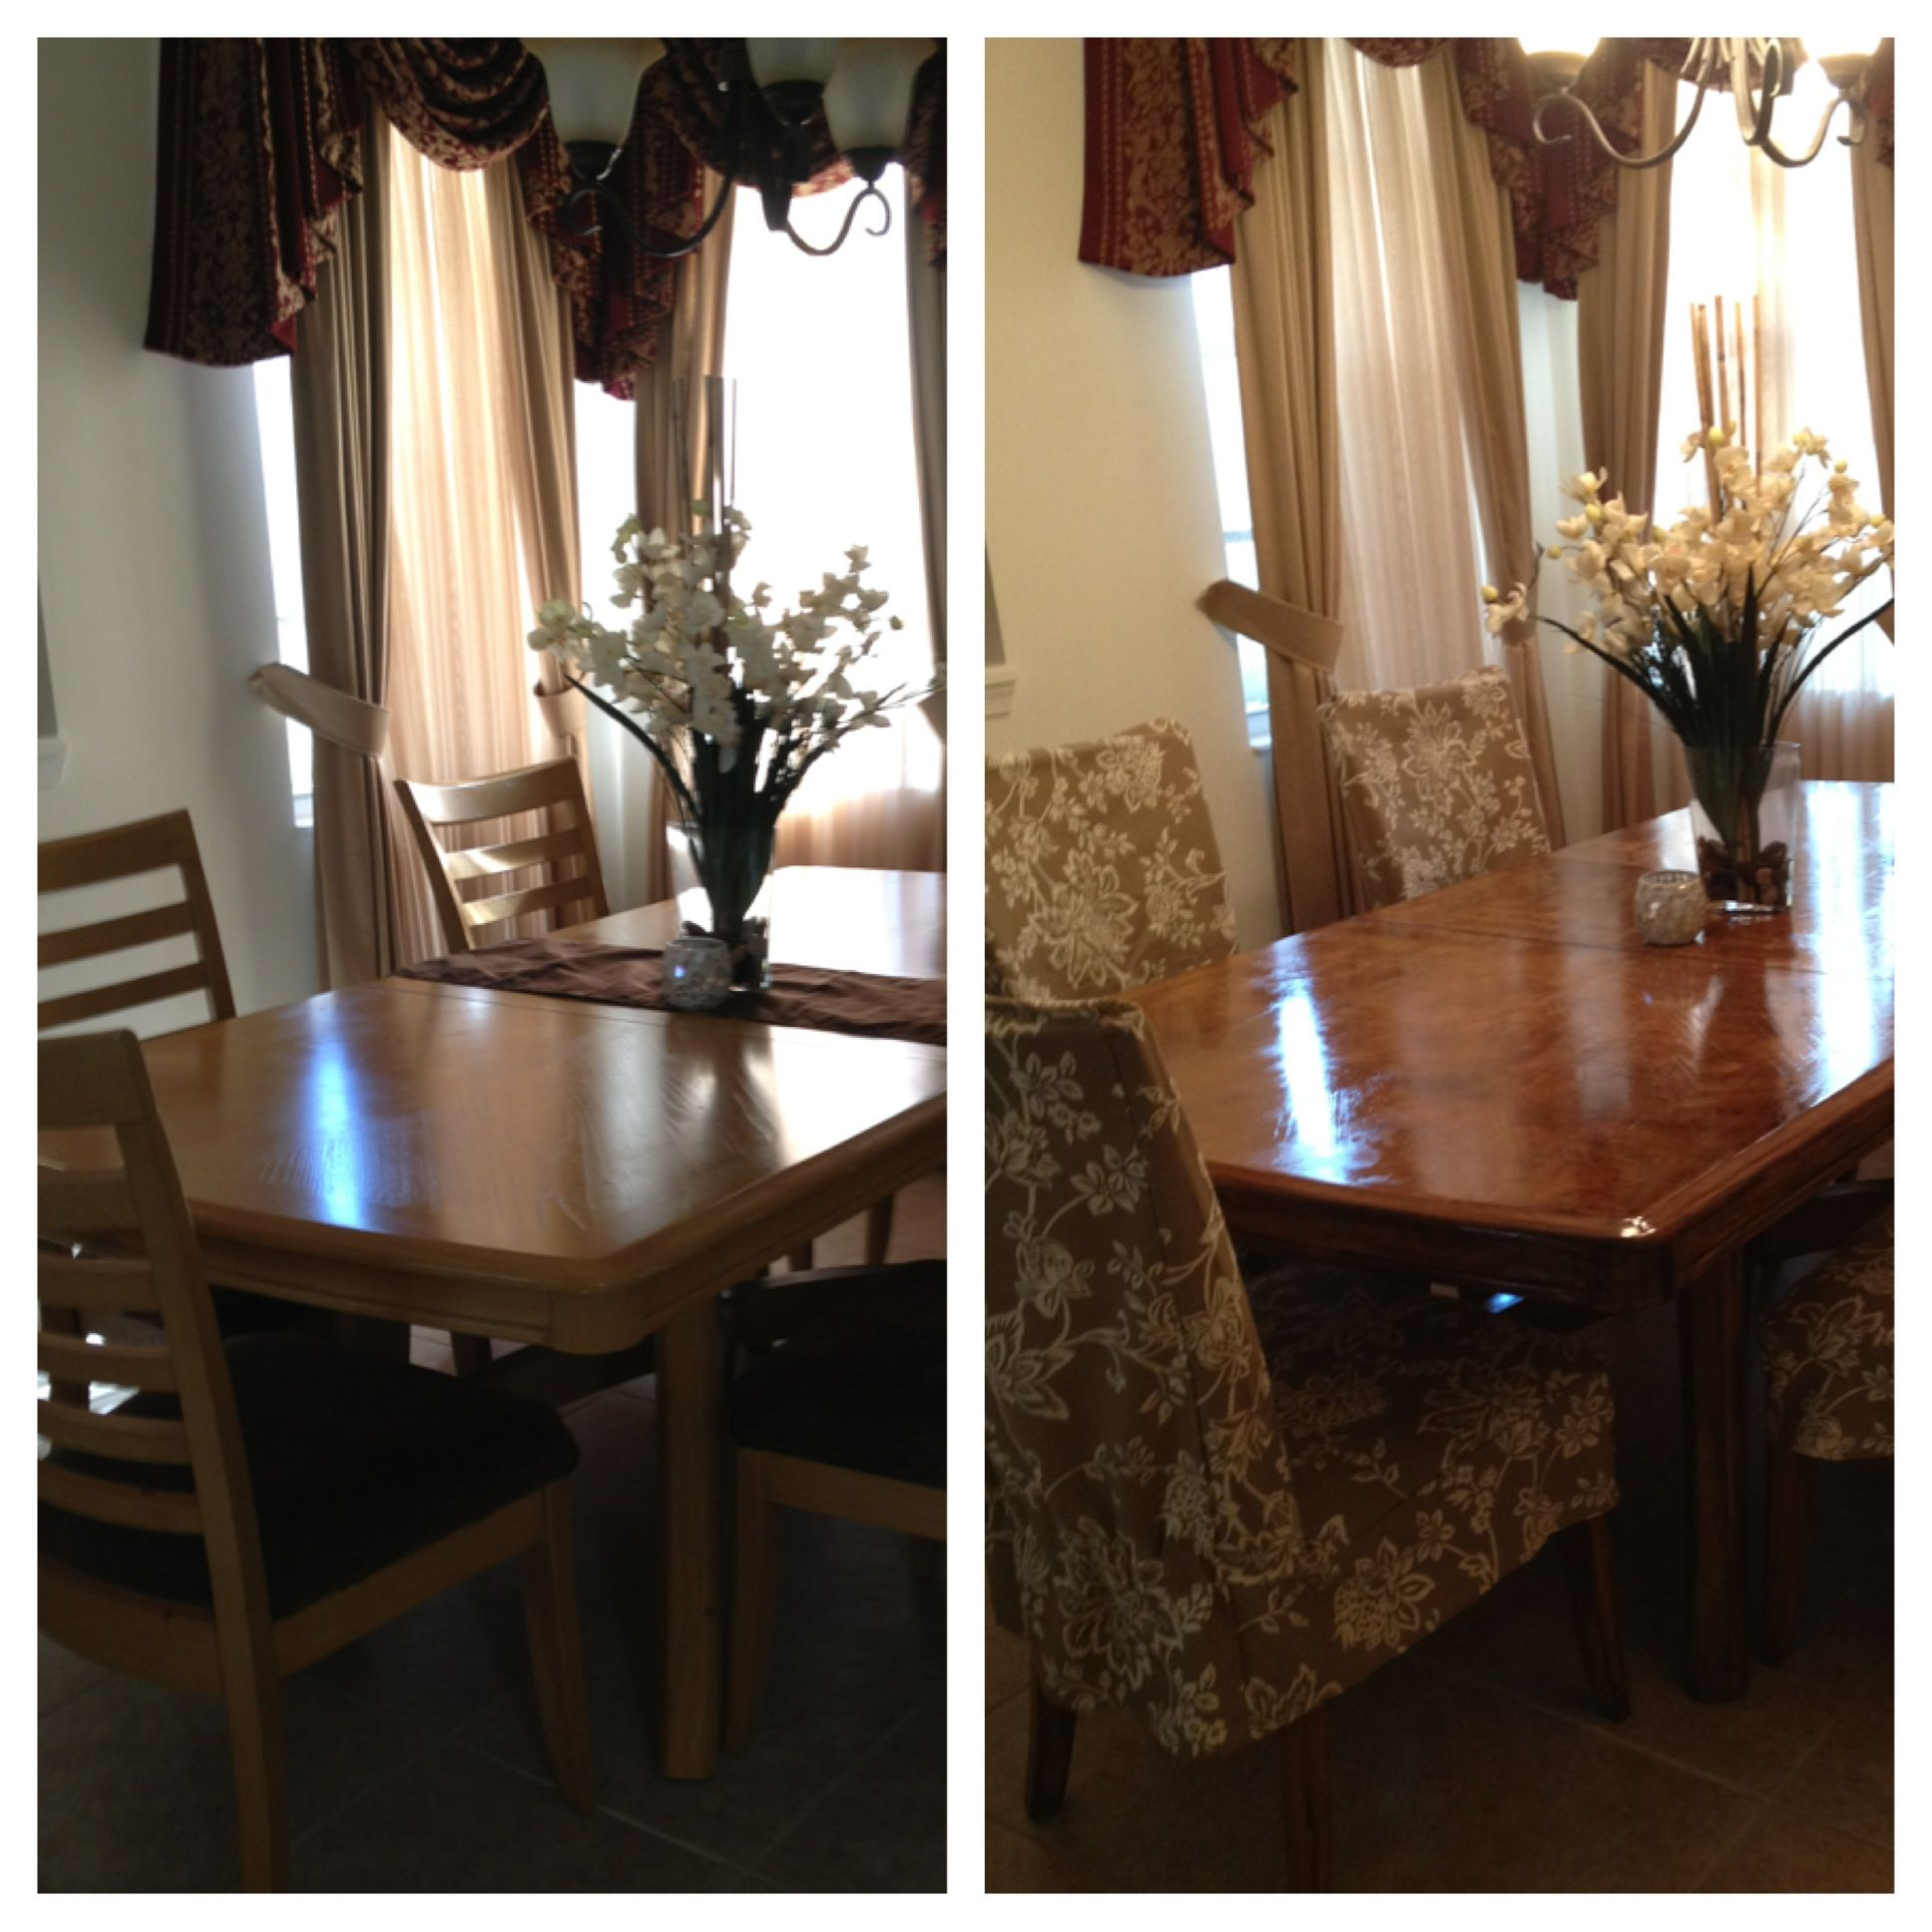 Refinished Dining Room Tables: Before & After, My Refinished Dining Room Table